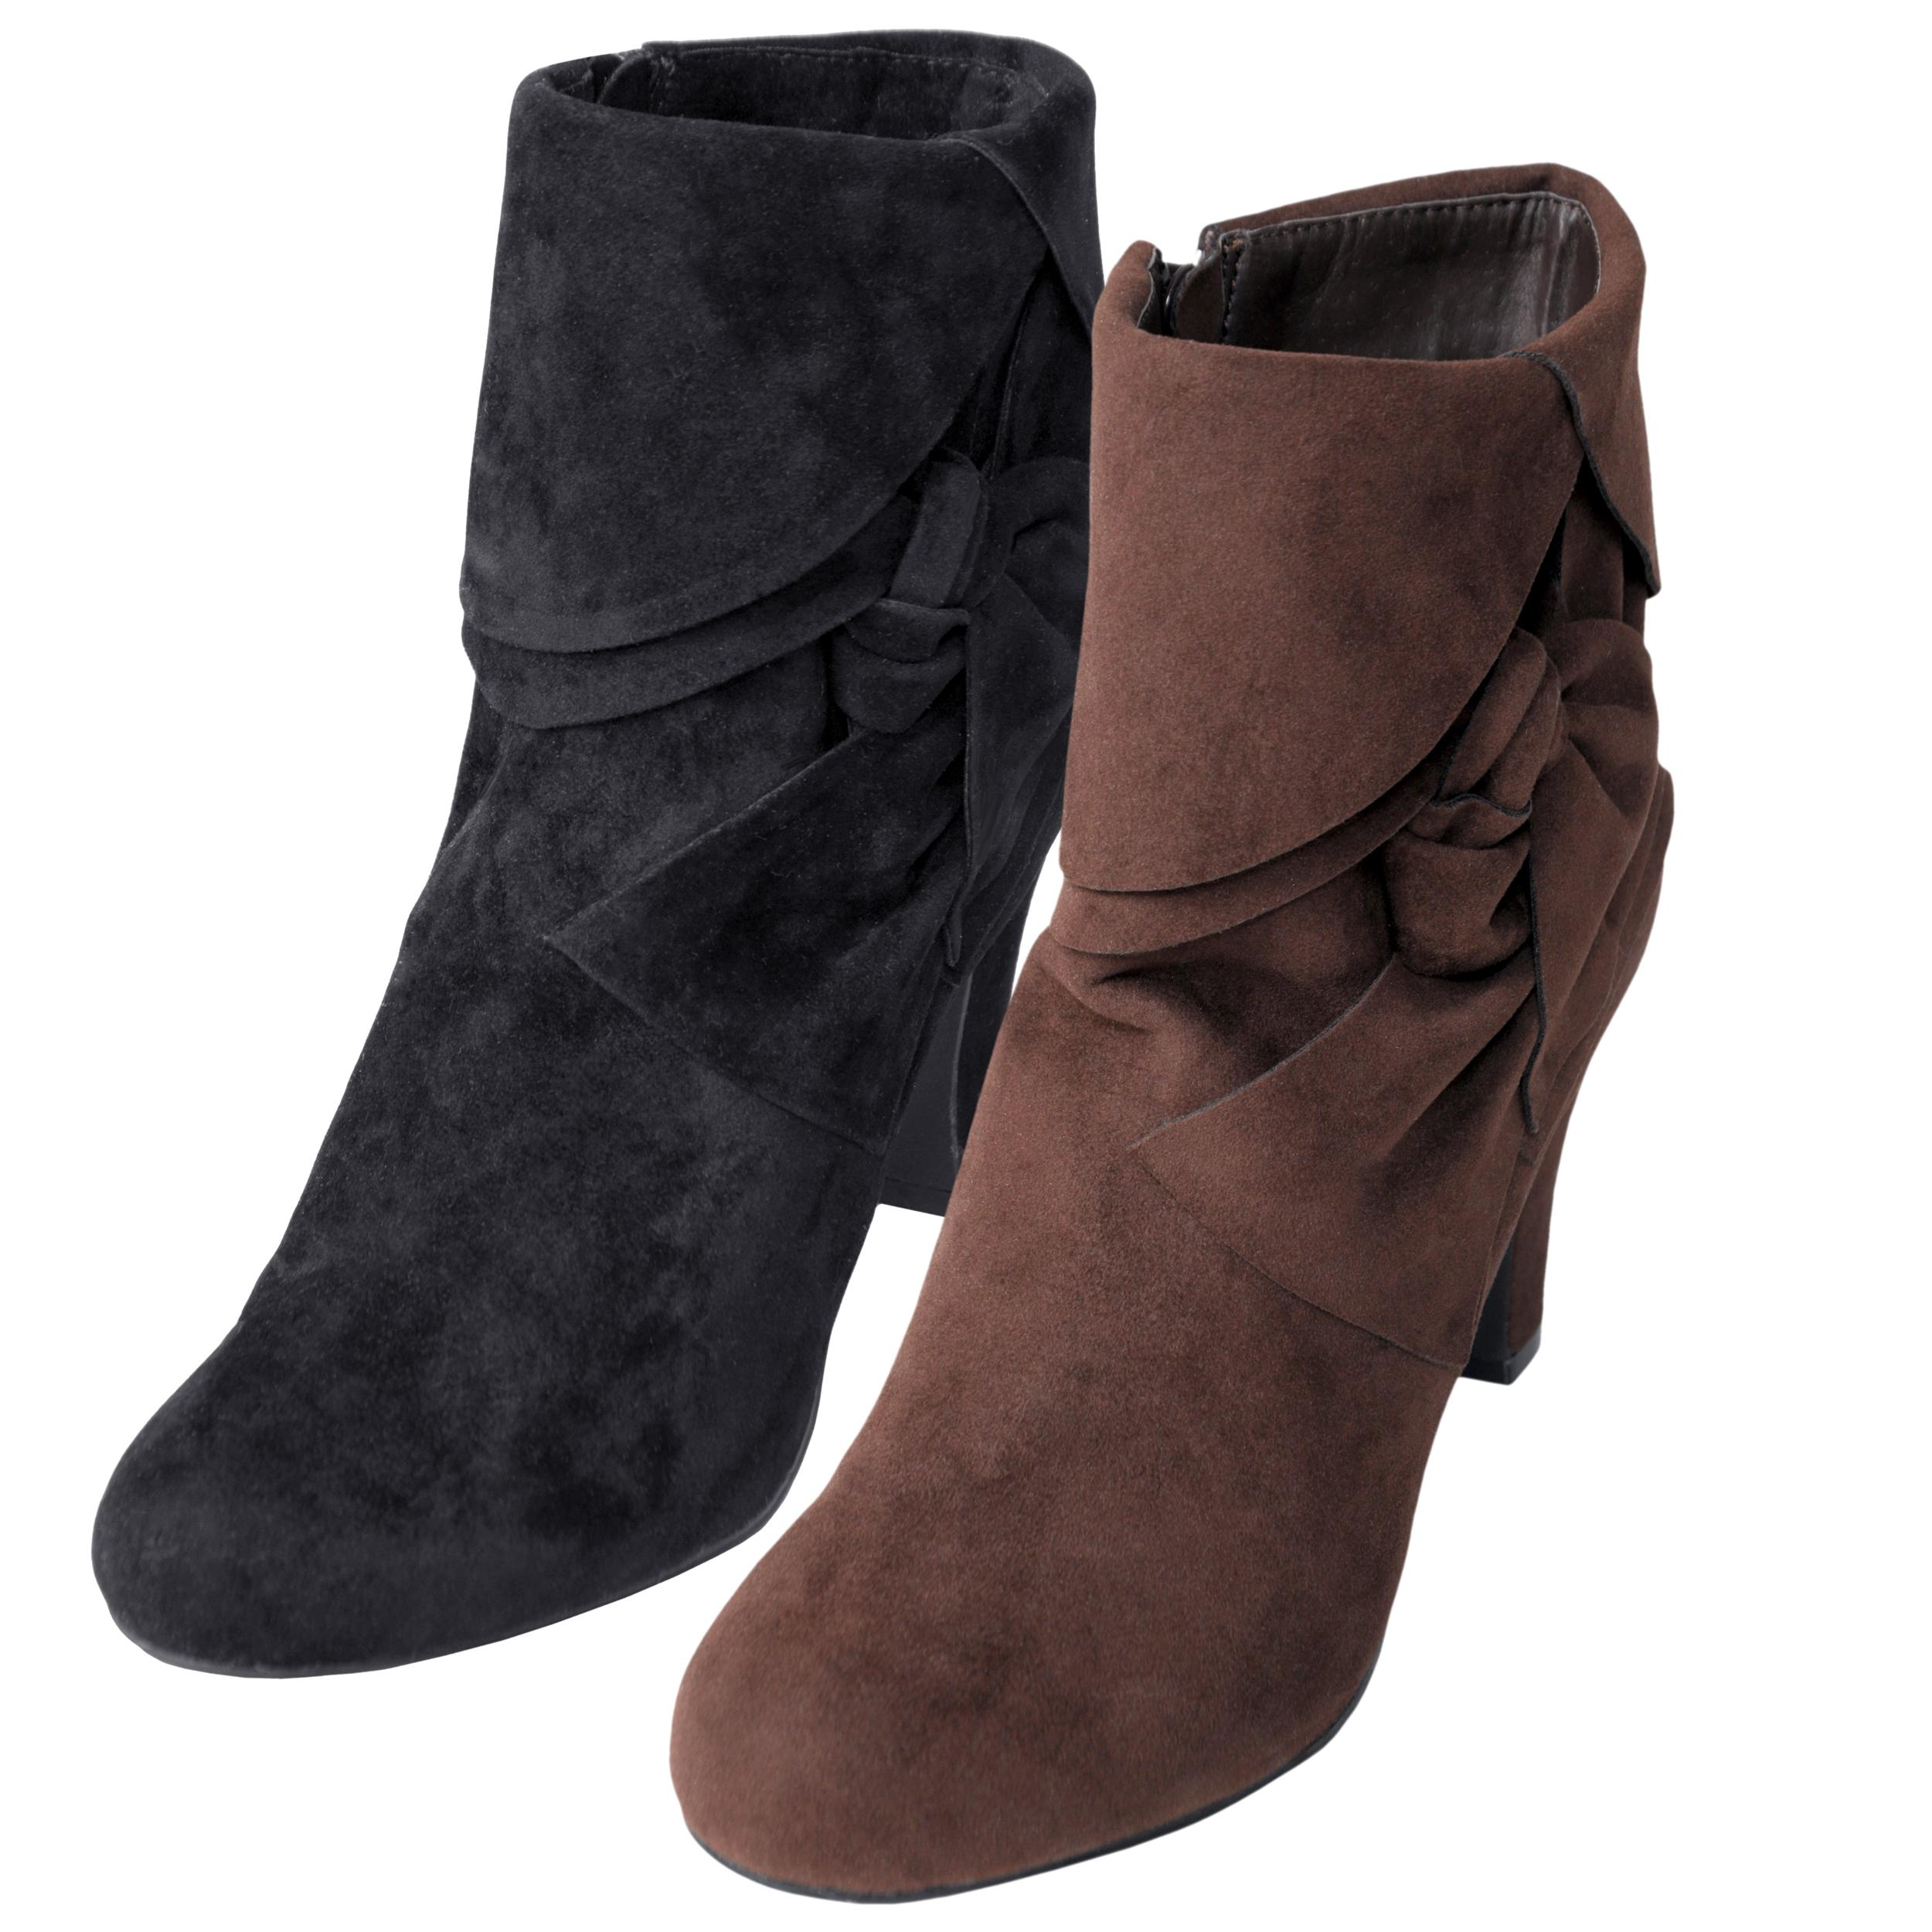 Journee Collection Women's 'Verde-16' Bow Accent Ankle Boots